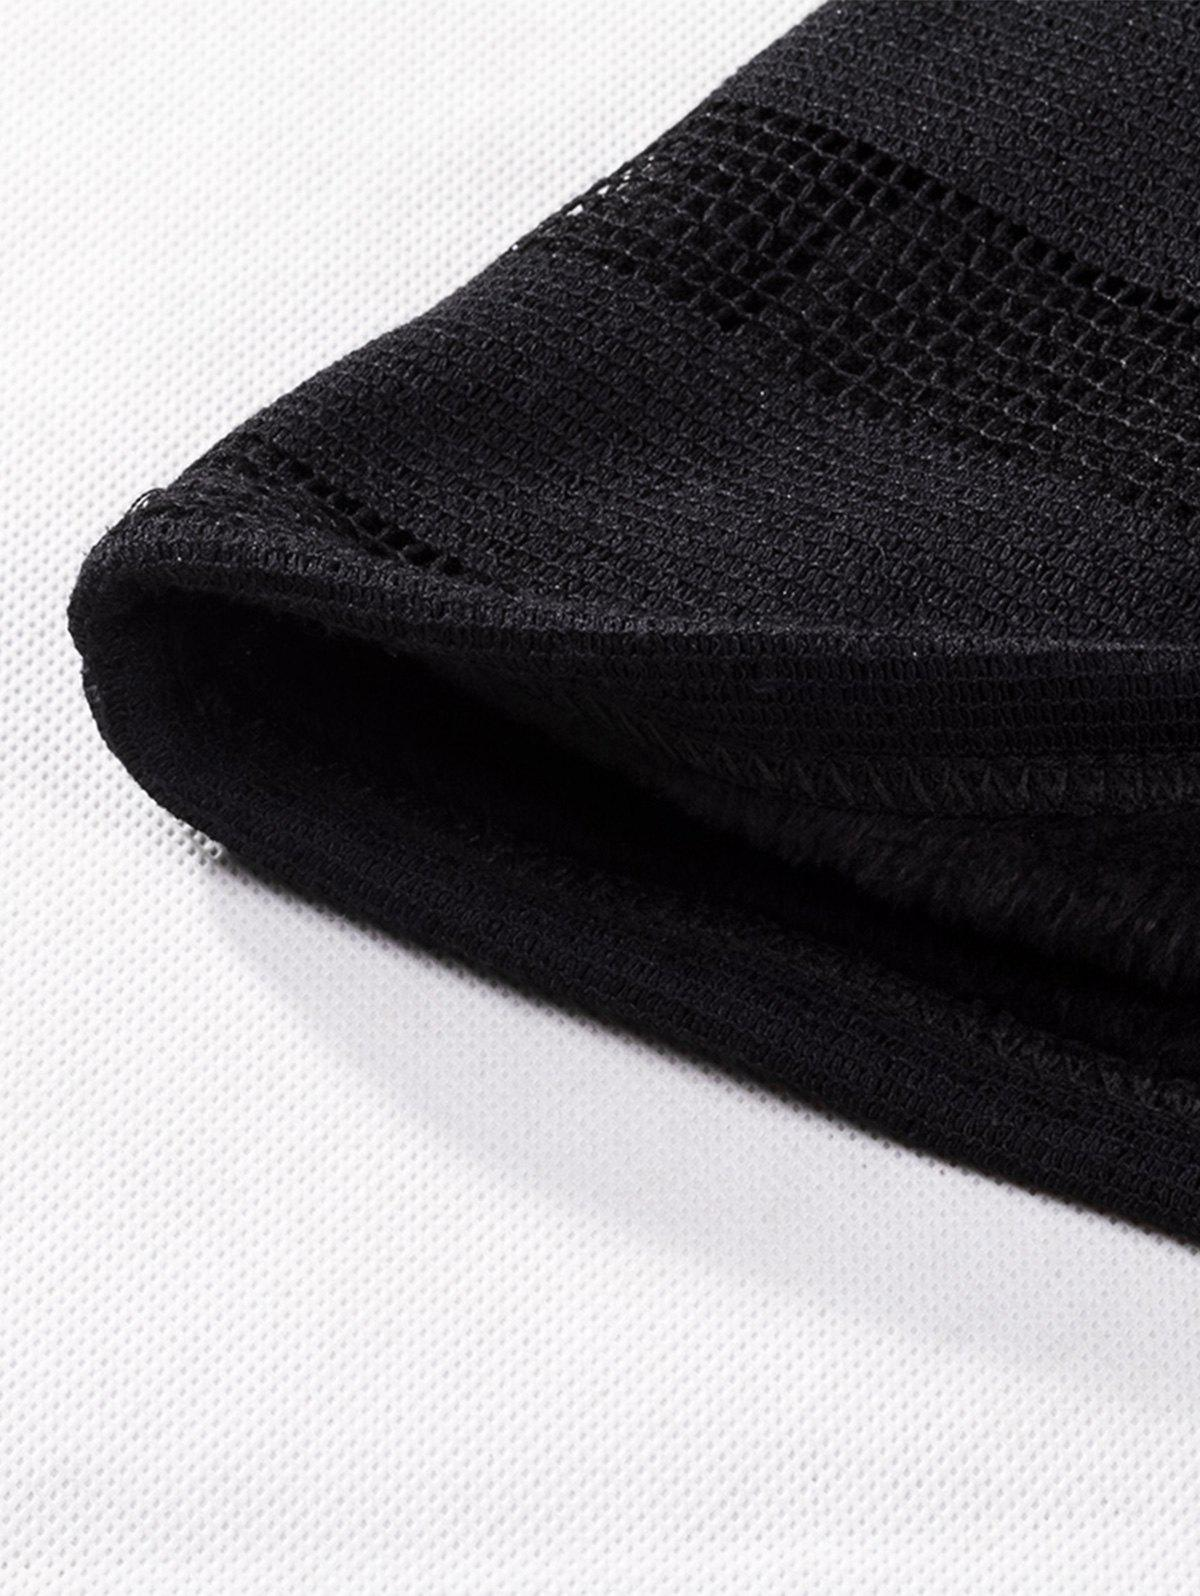 V Neck Stripe Fleece Knitted T-shirt - BLACK 4XL